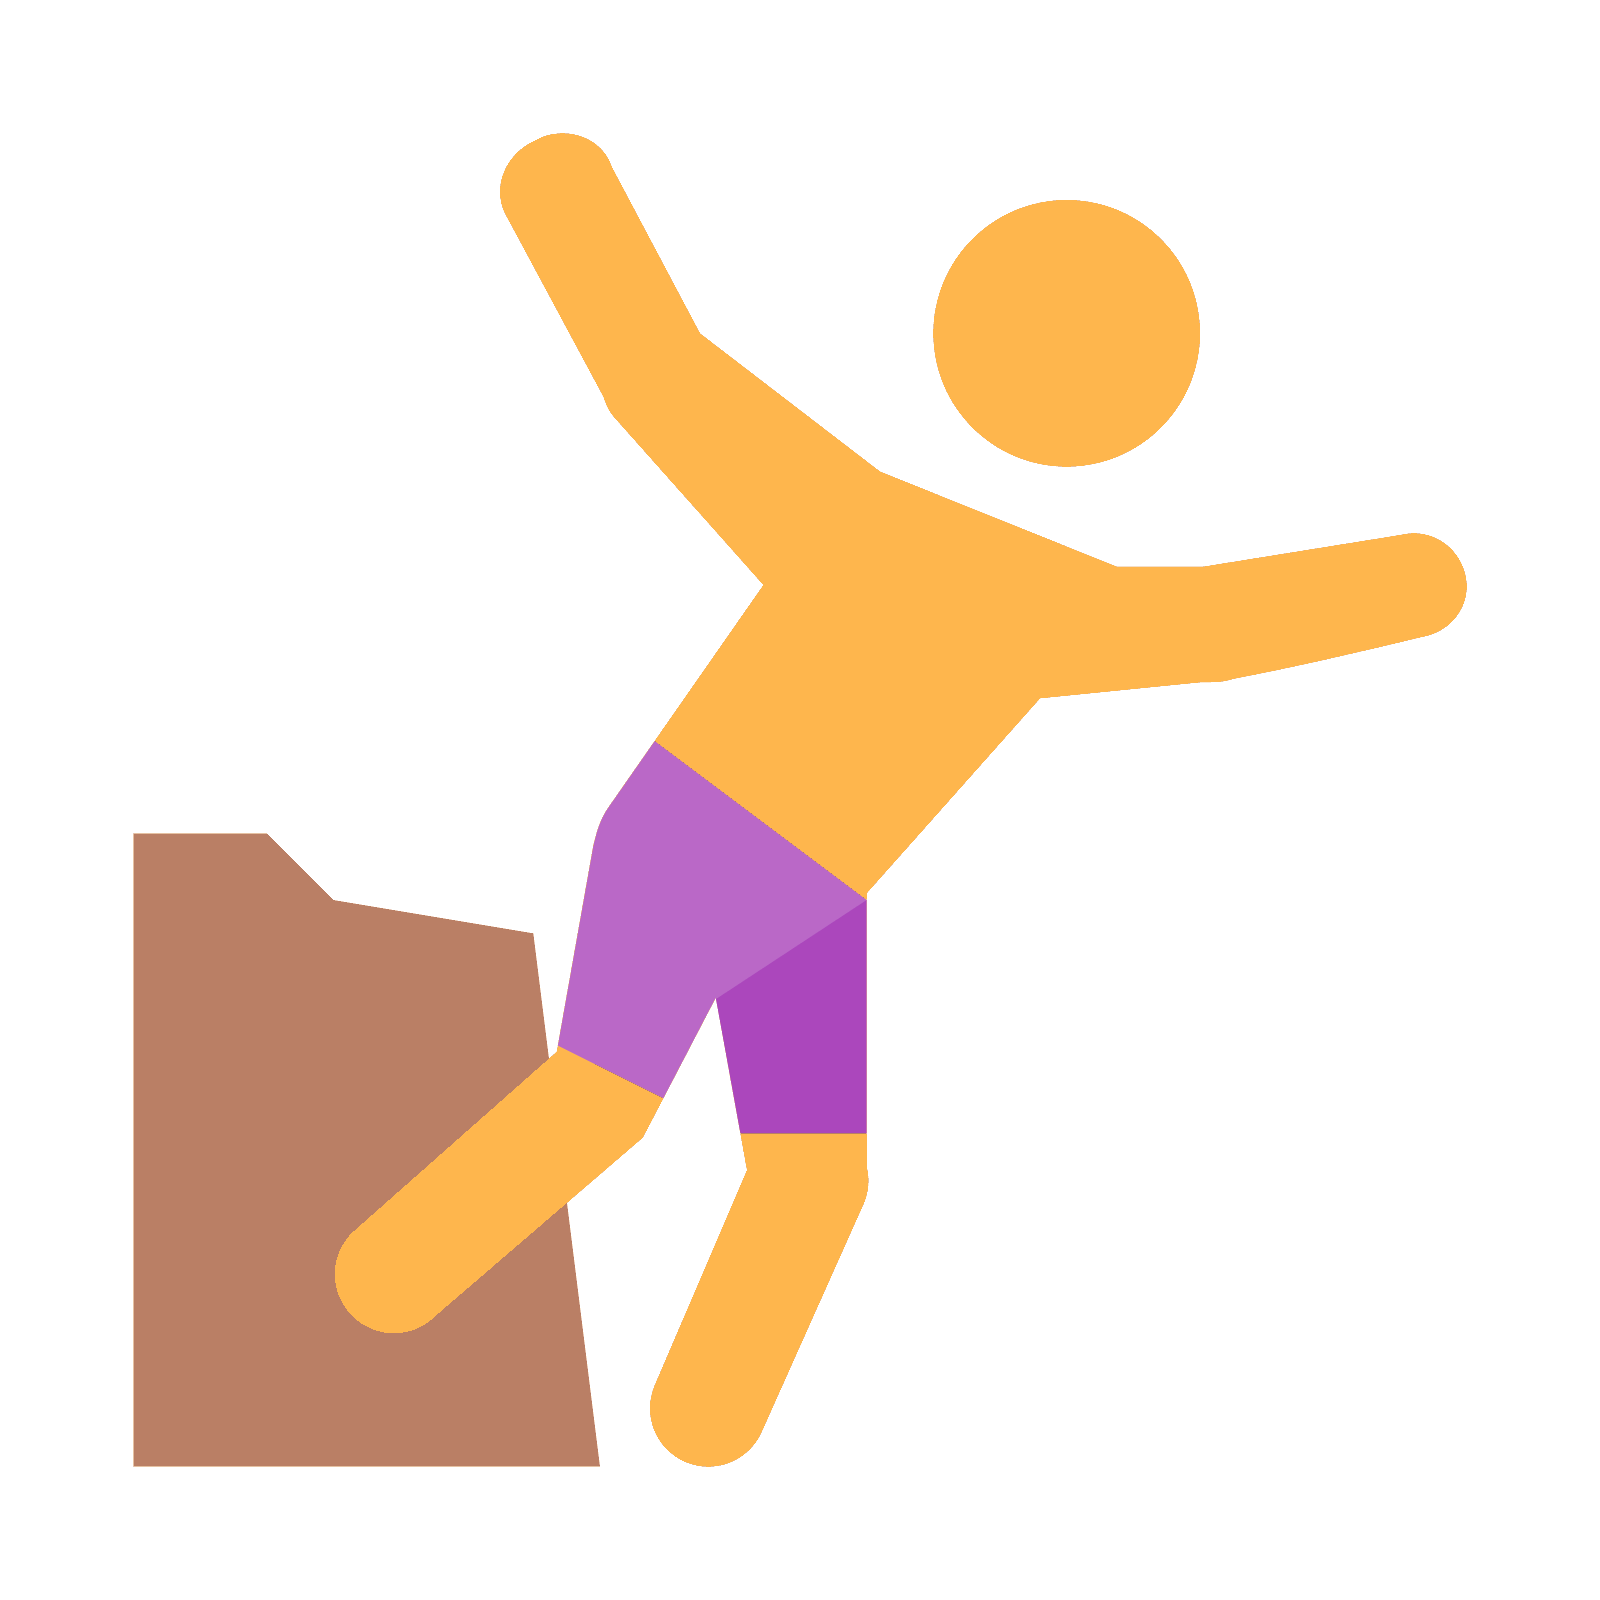 black and white library  cliff png icon. Jumping clipart feeling good